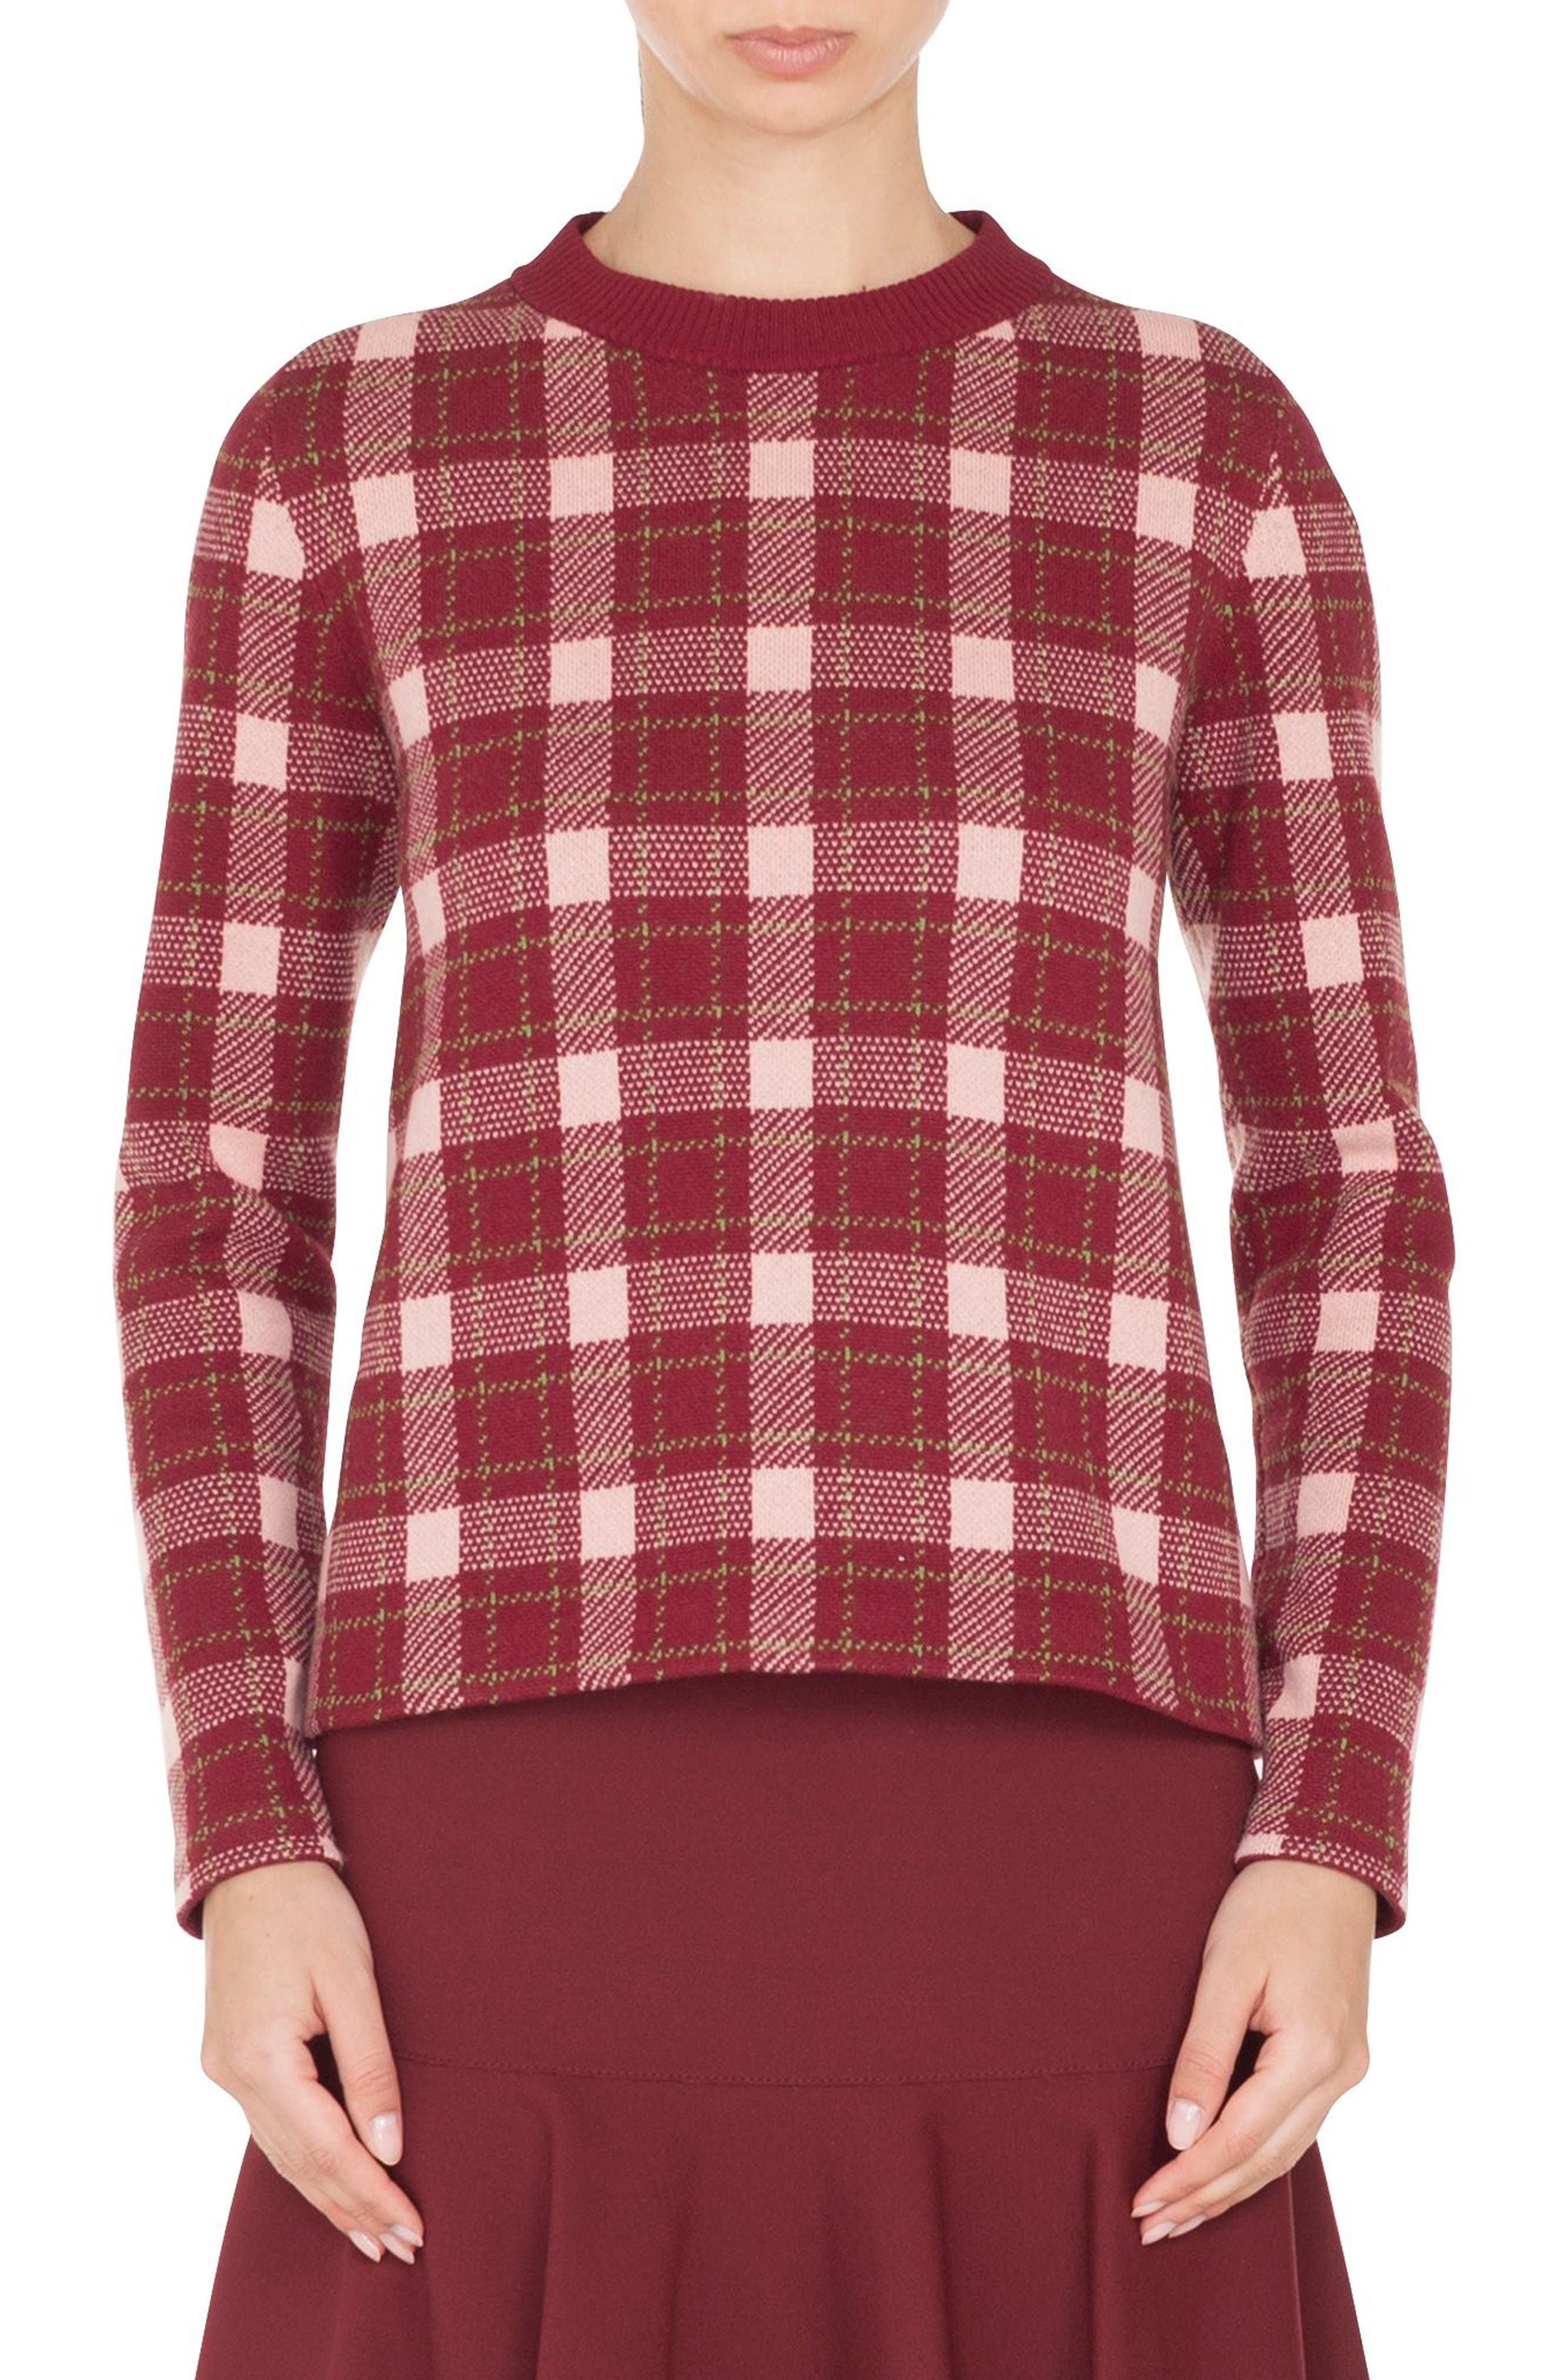 Brit Check Wool & Cashmere Pullover,                         Main,                         color, BLUSH ROSE/ BURGUNDY